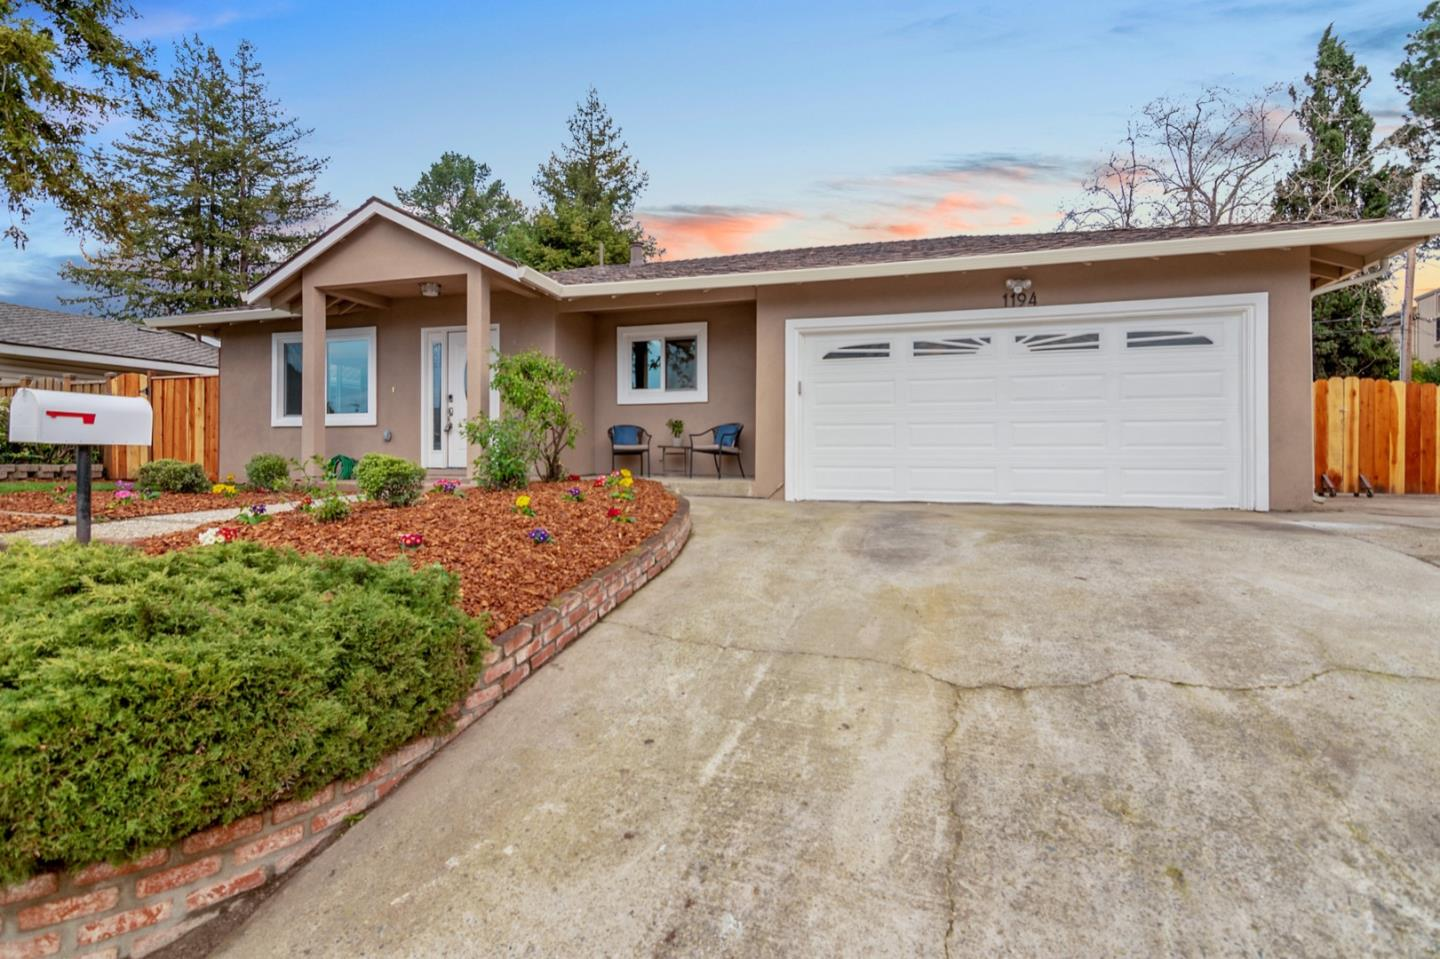 1194 HOLMES AVE, CAMPBELL, CA 95008